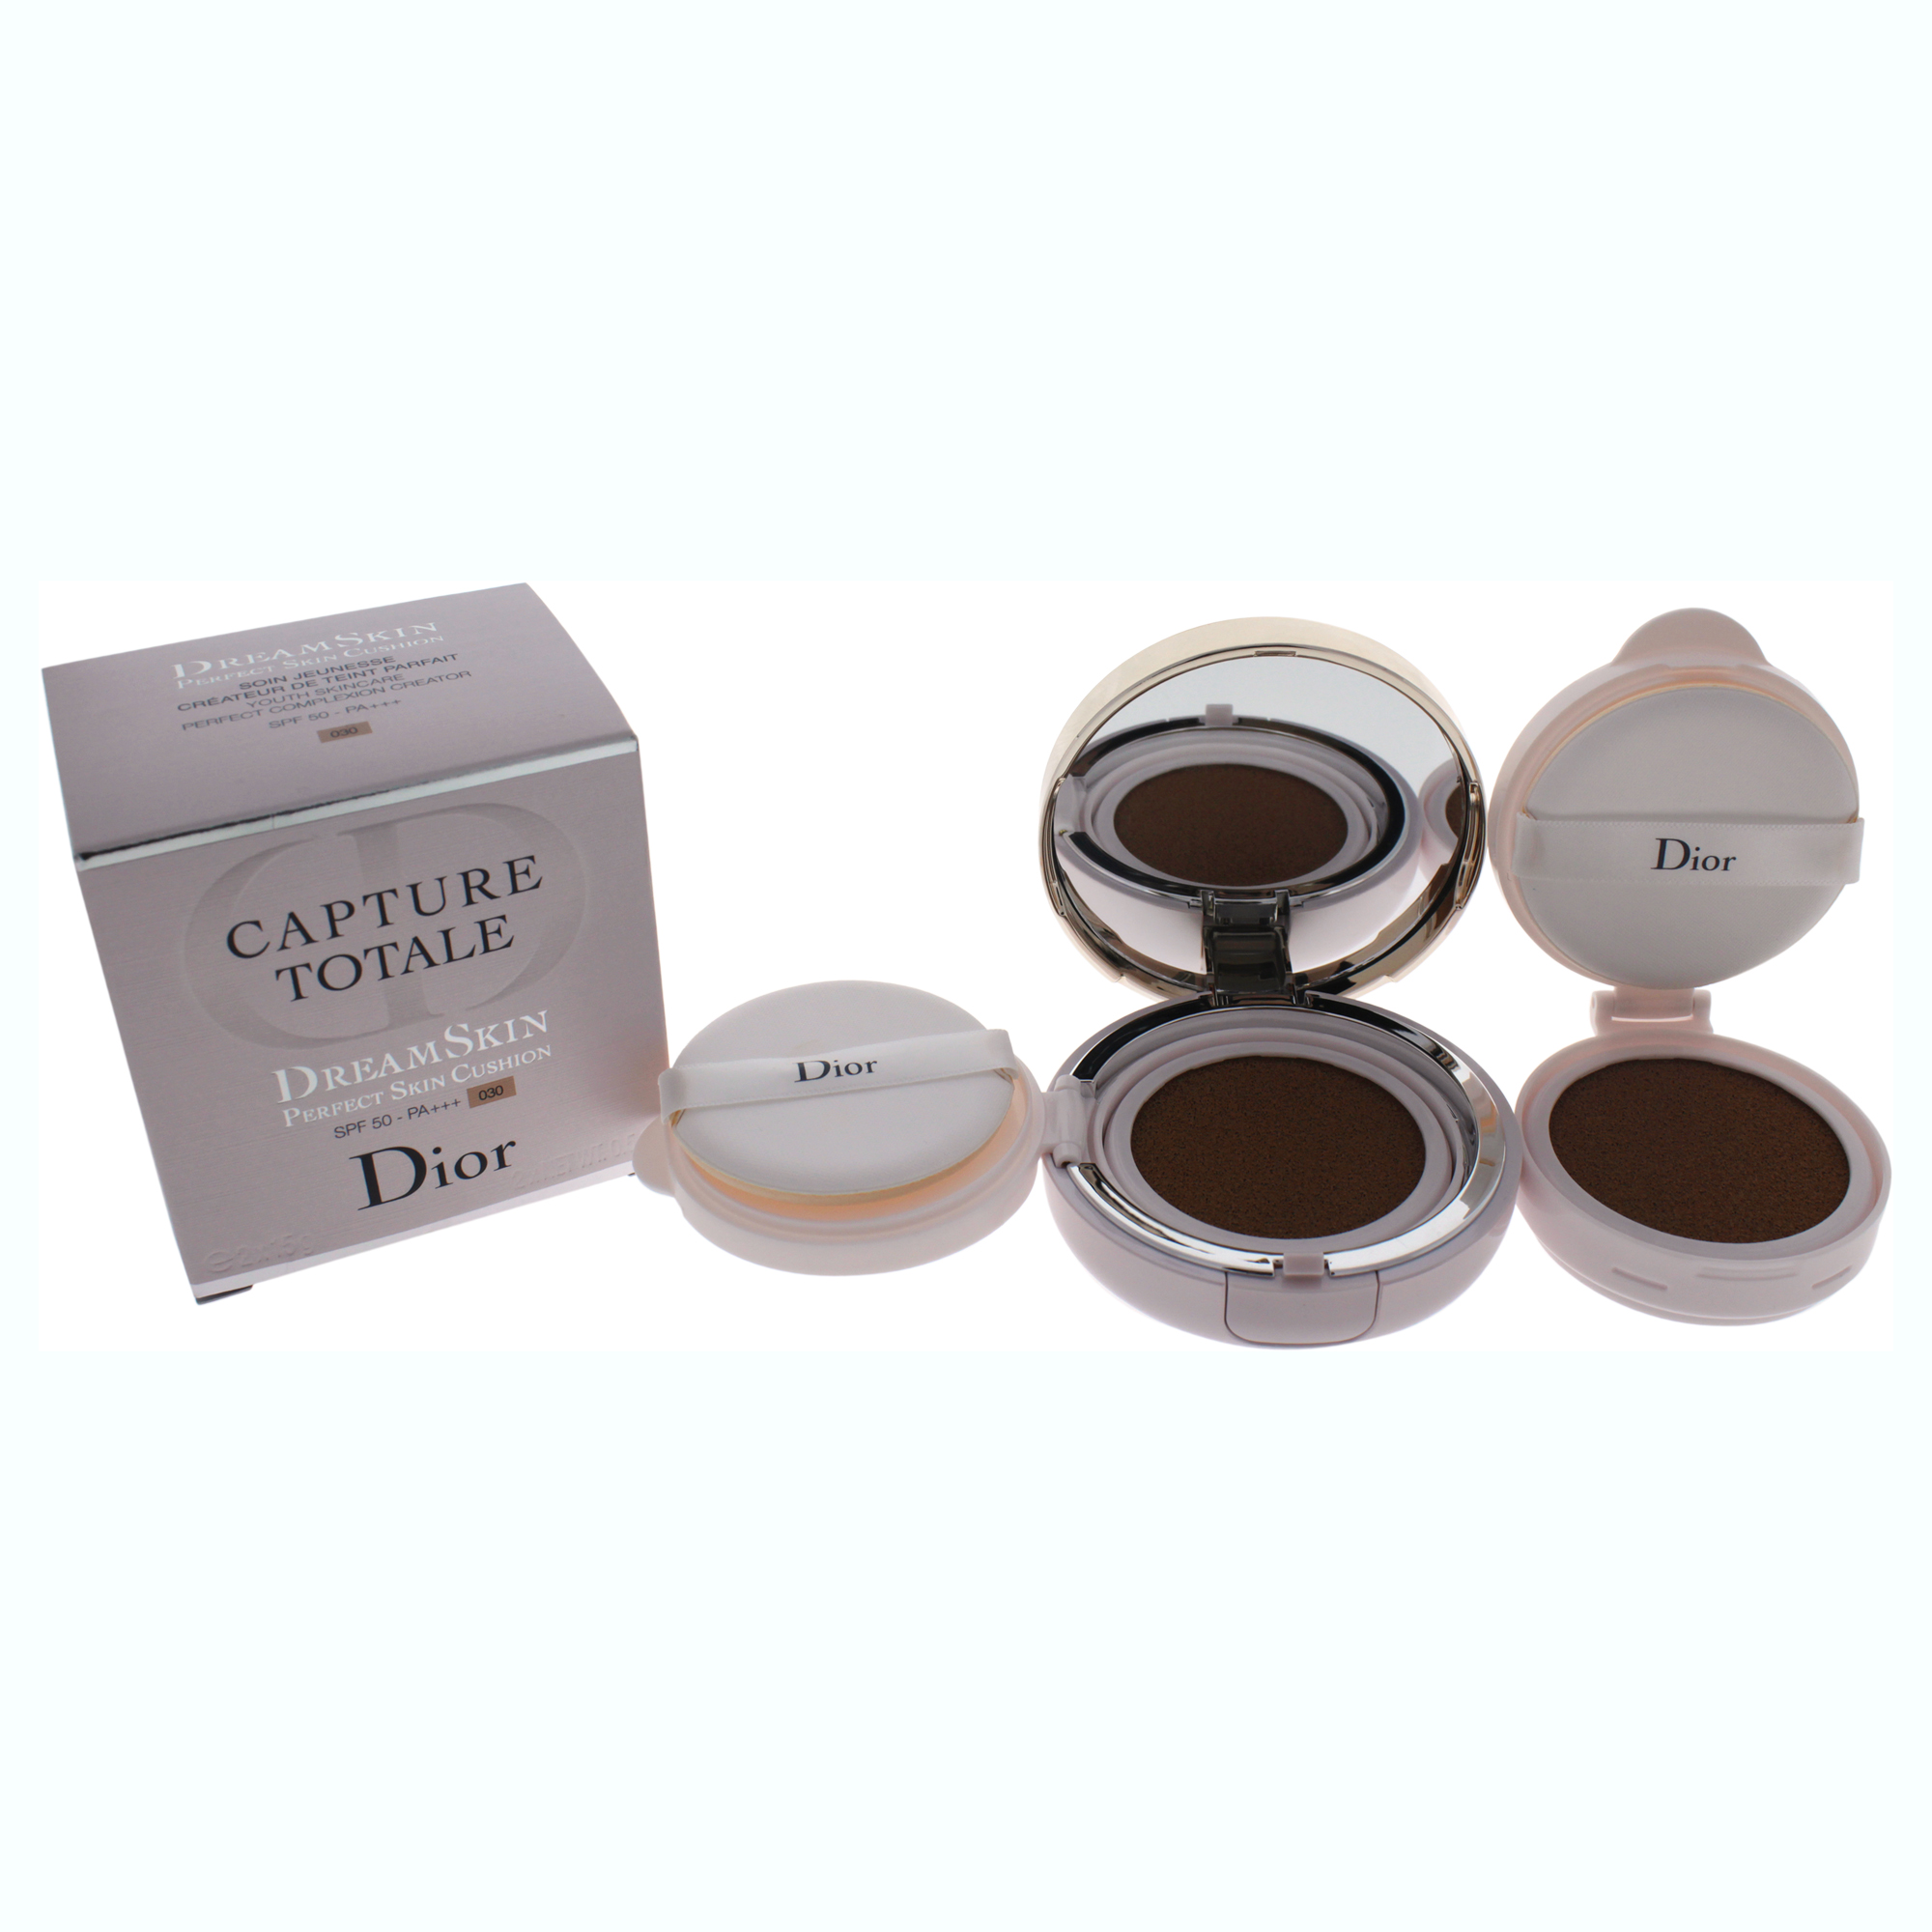 Capture Totale Dreamskin Perfect Skin Cushion Spf 50 030 By Christian Dior For Women 2 X 0 5 Oz Capture Totale Dreamskin And One Refill